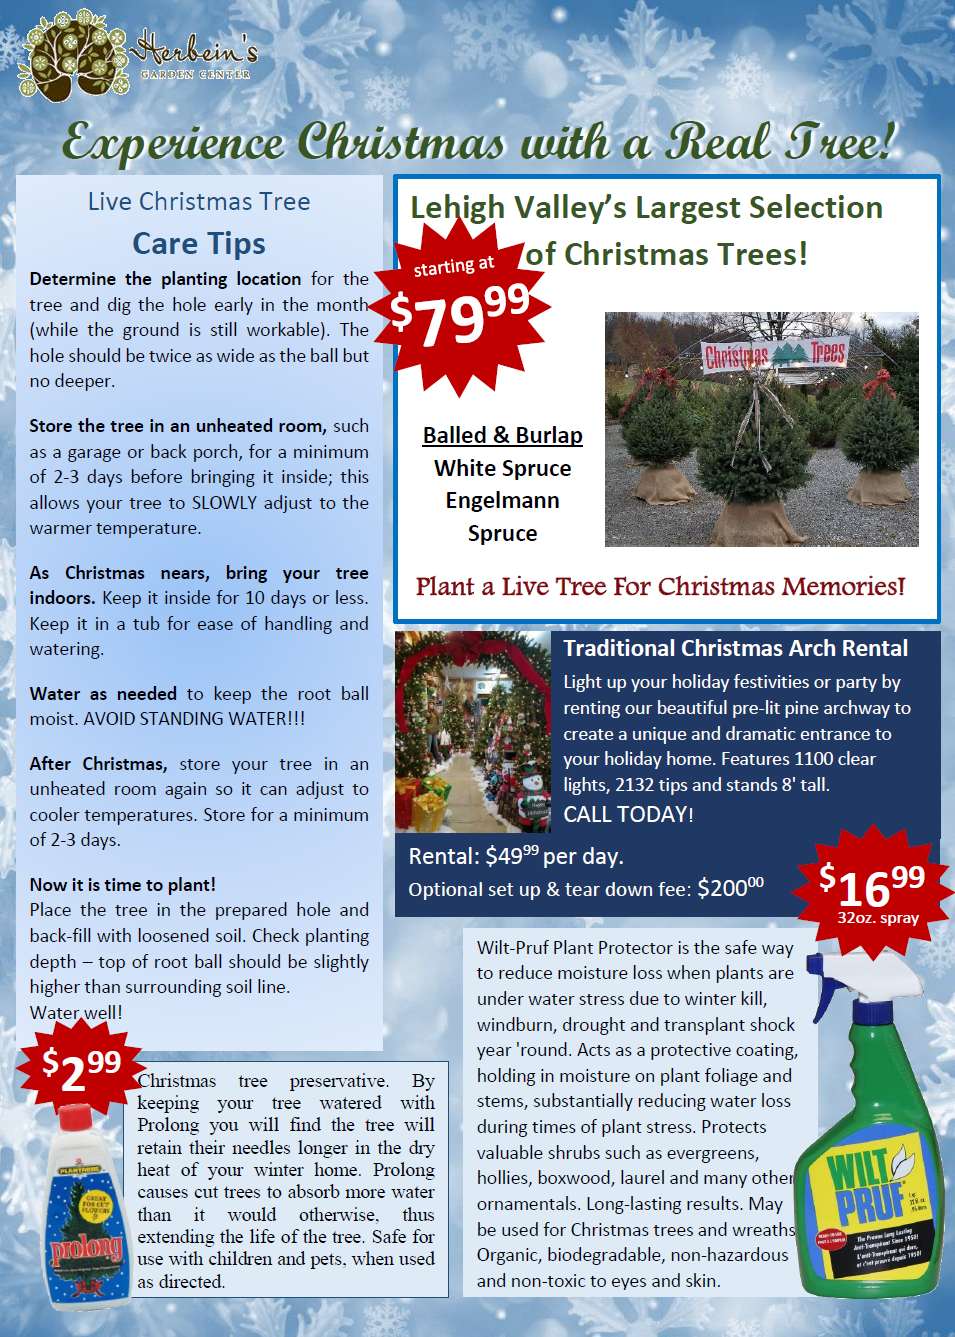 Herbeins Garden Center Holiday Guide 2018